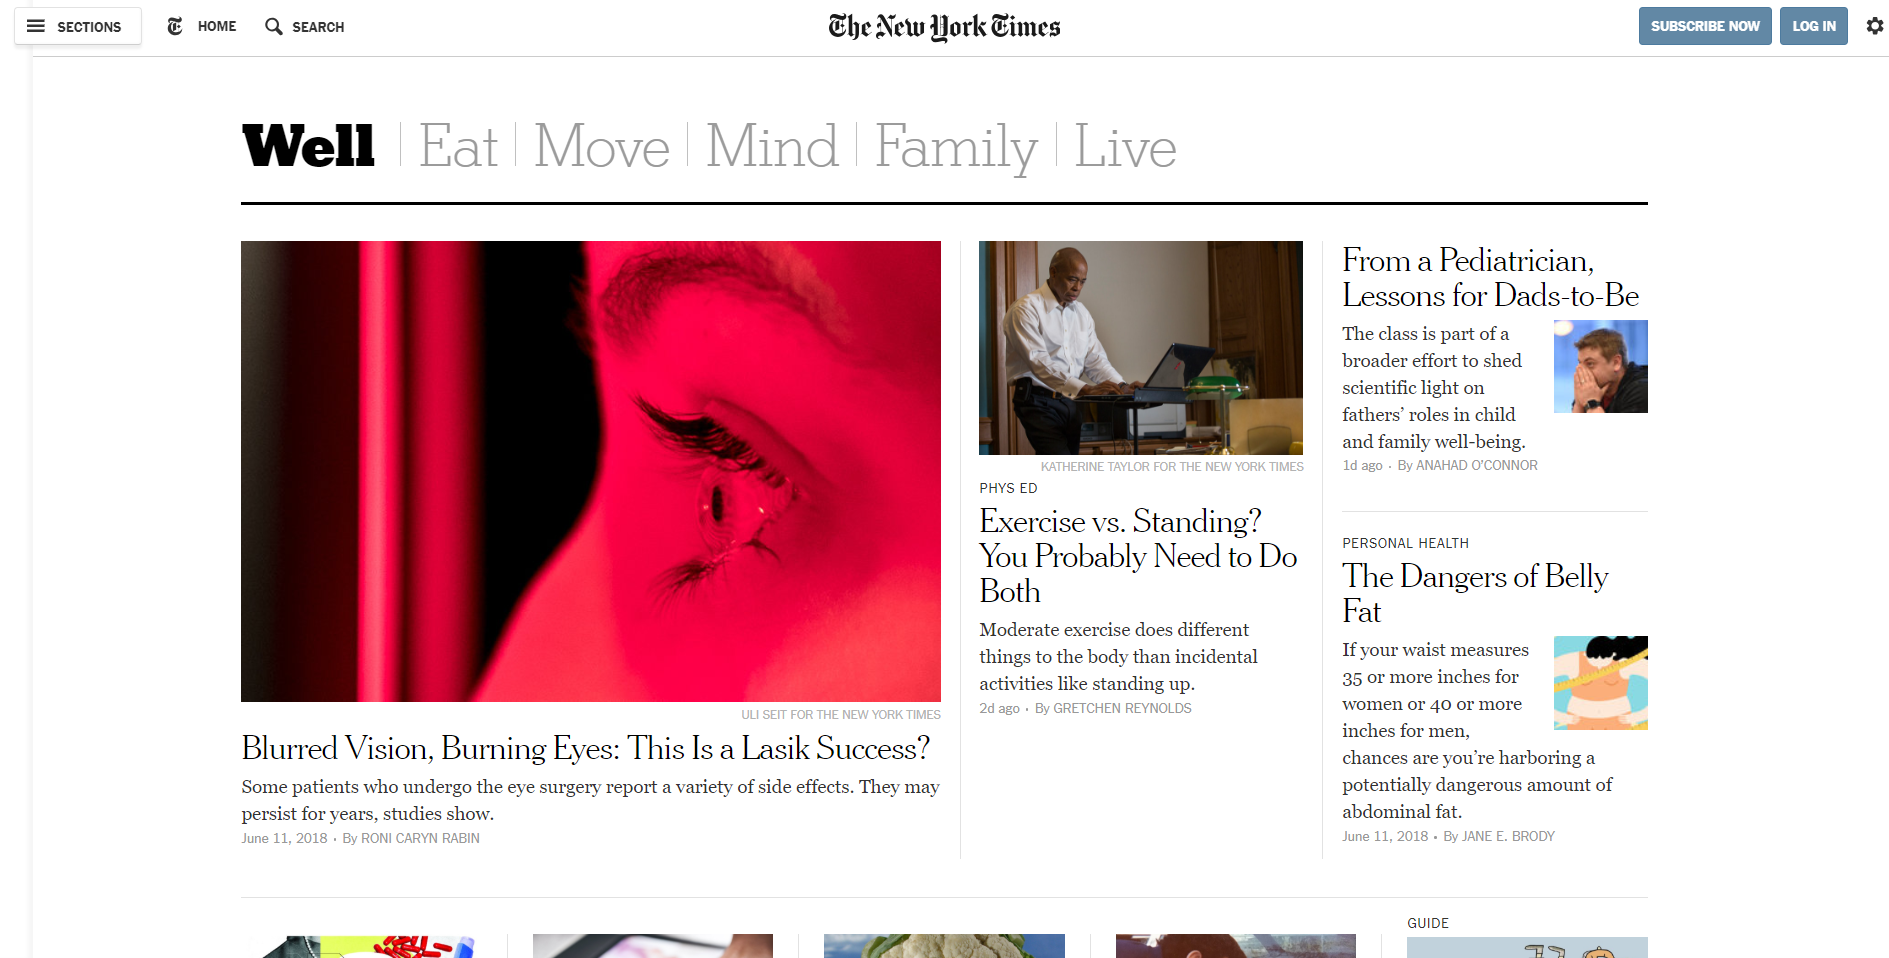 Screenshot of the New York Times Well Section